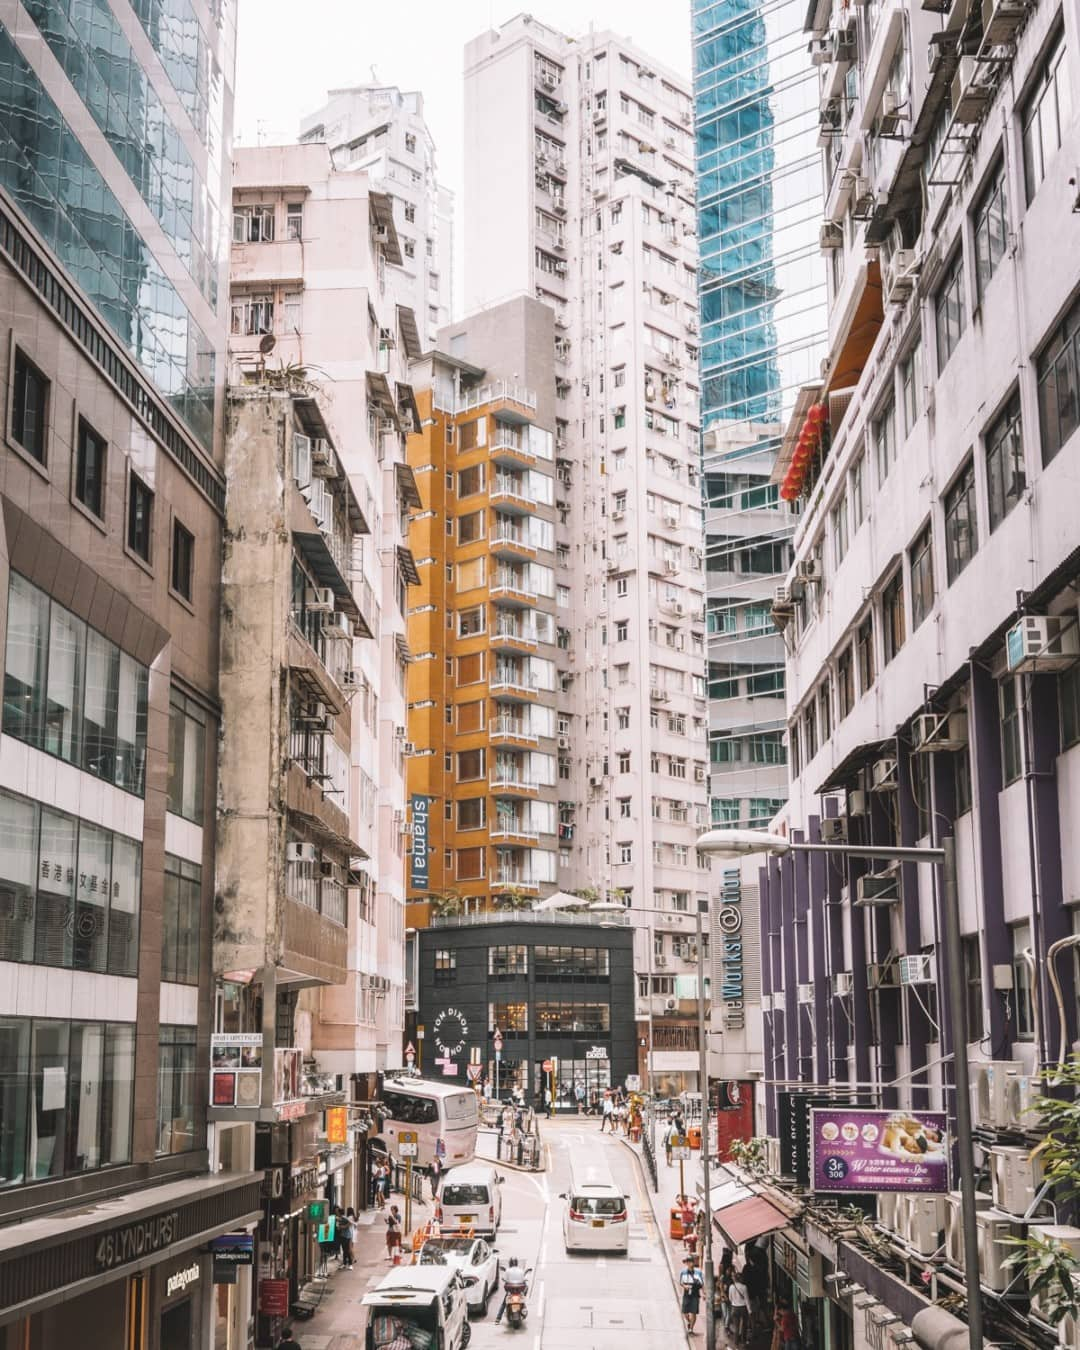 14 Tips For Traveling to Hong Kong For the First Time